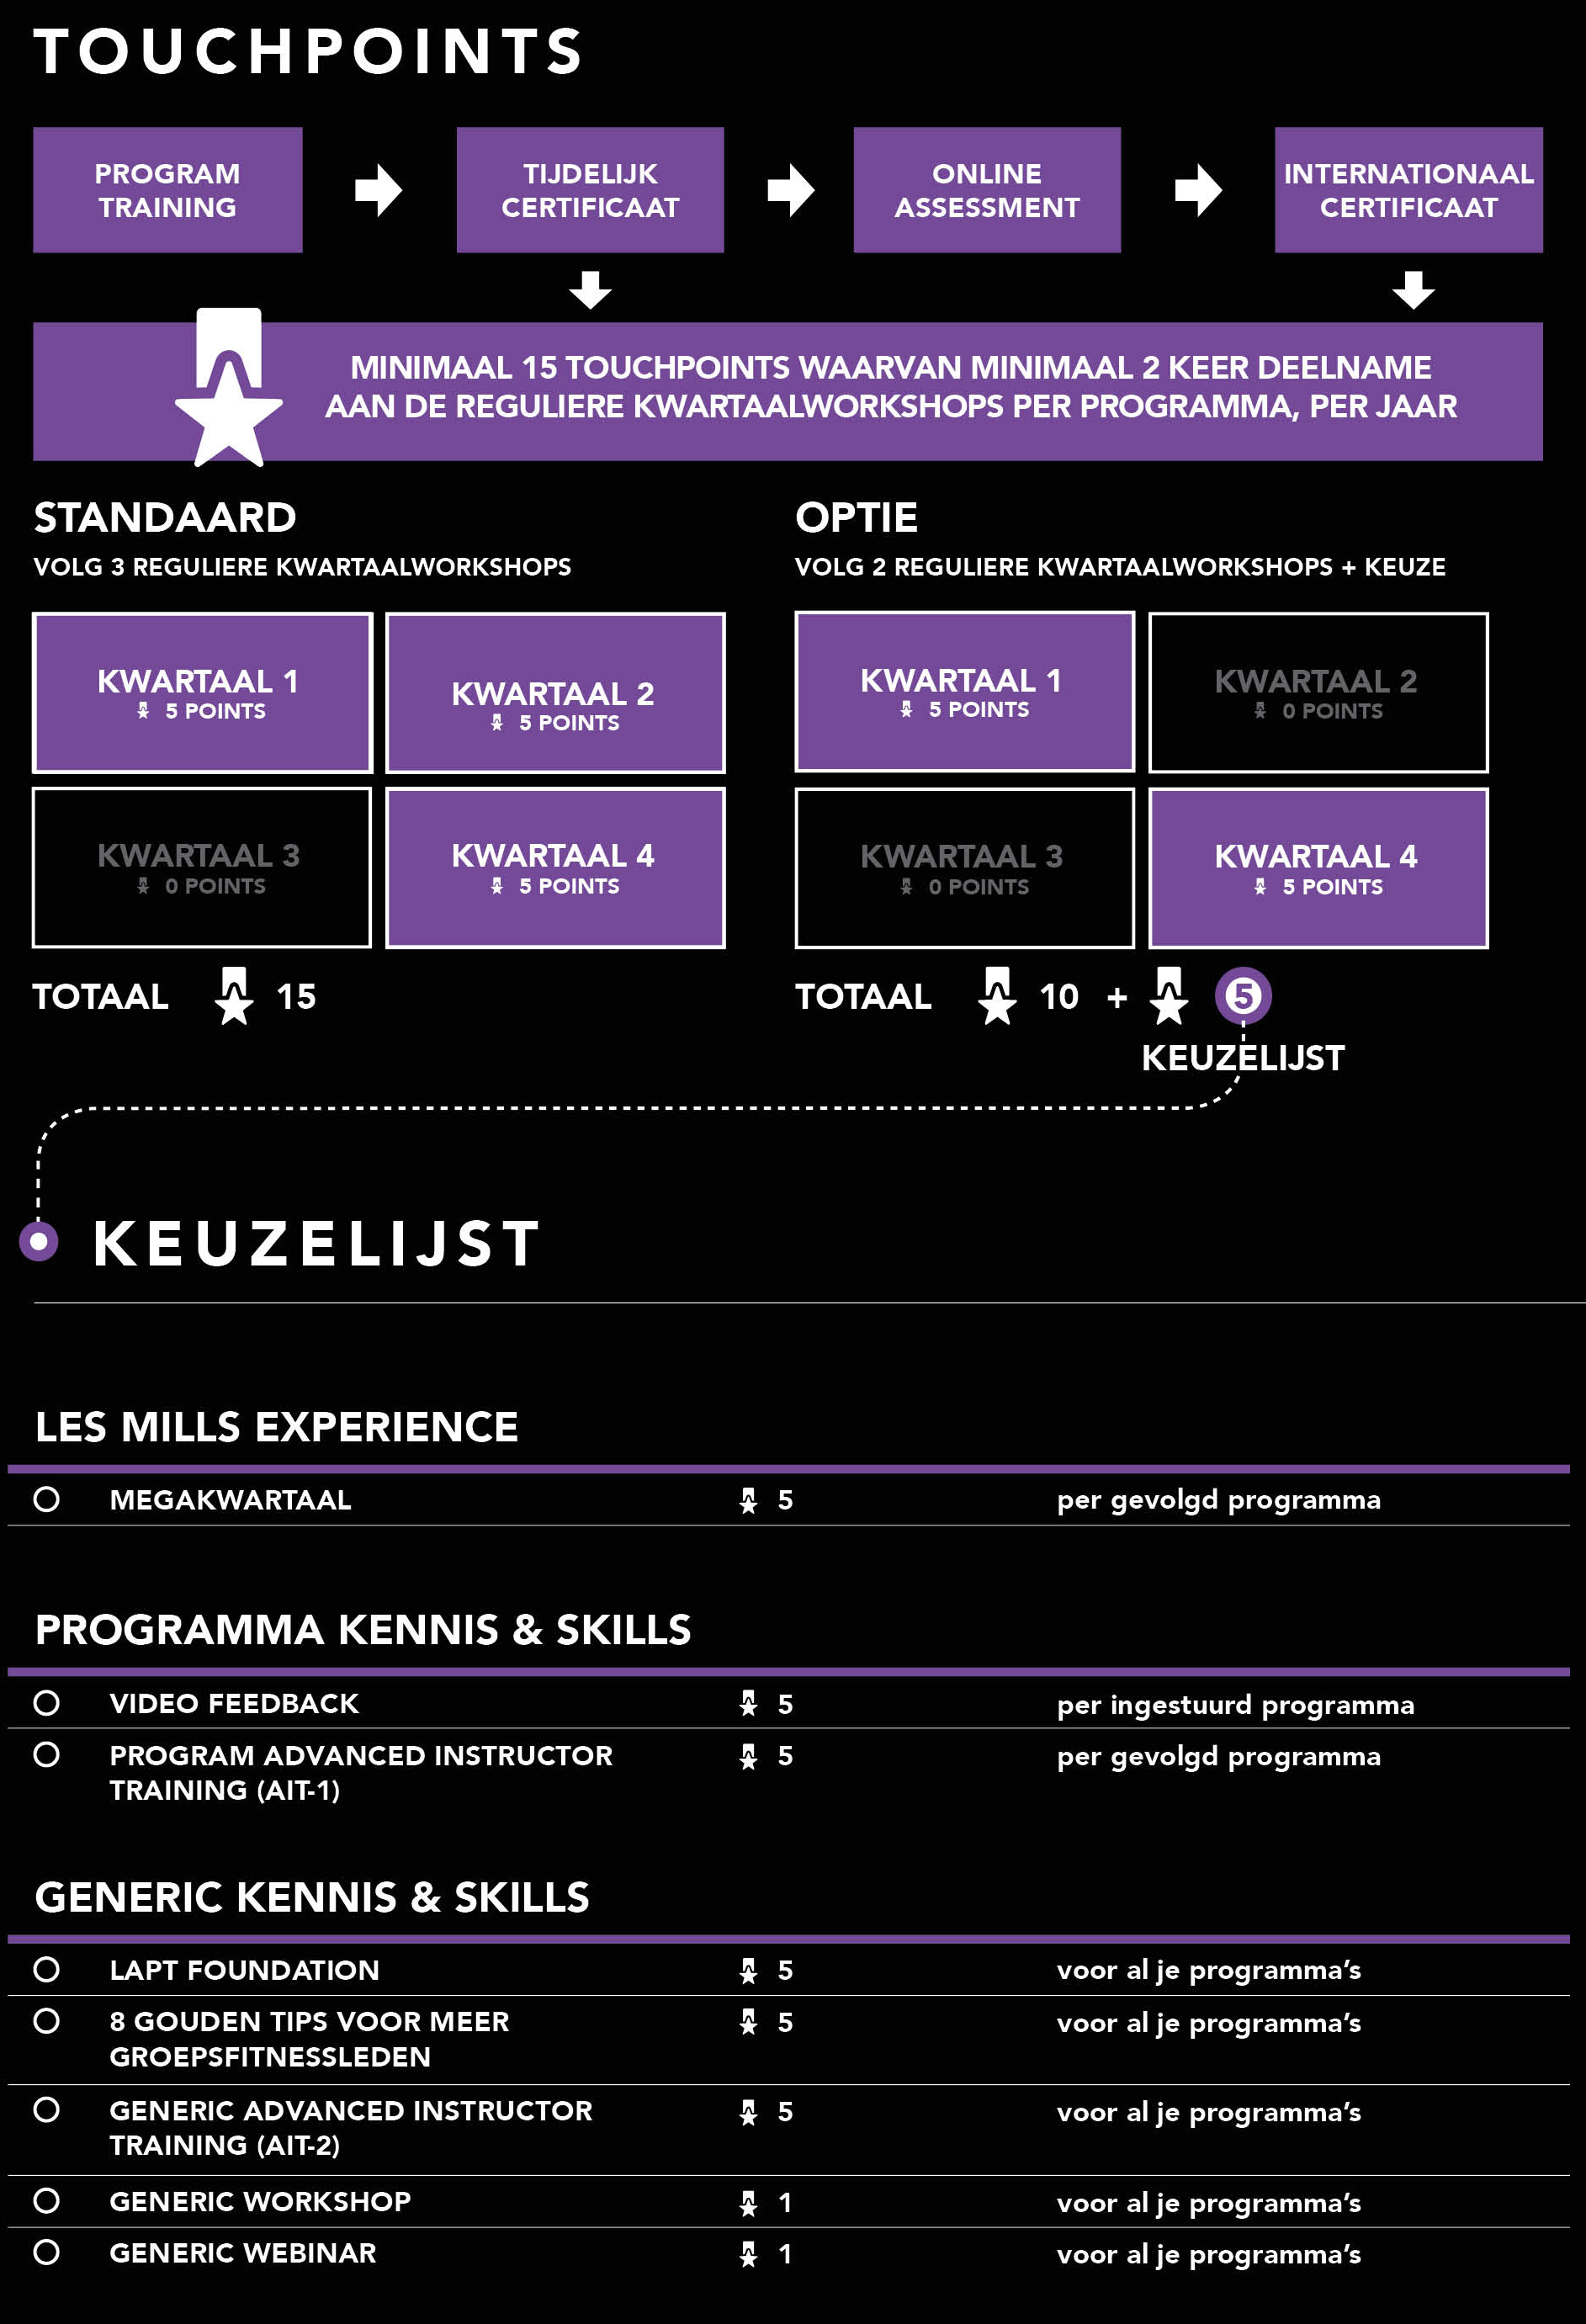 Les Mills Touchpoints